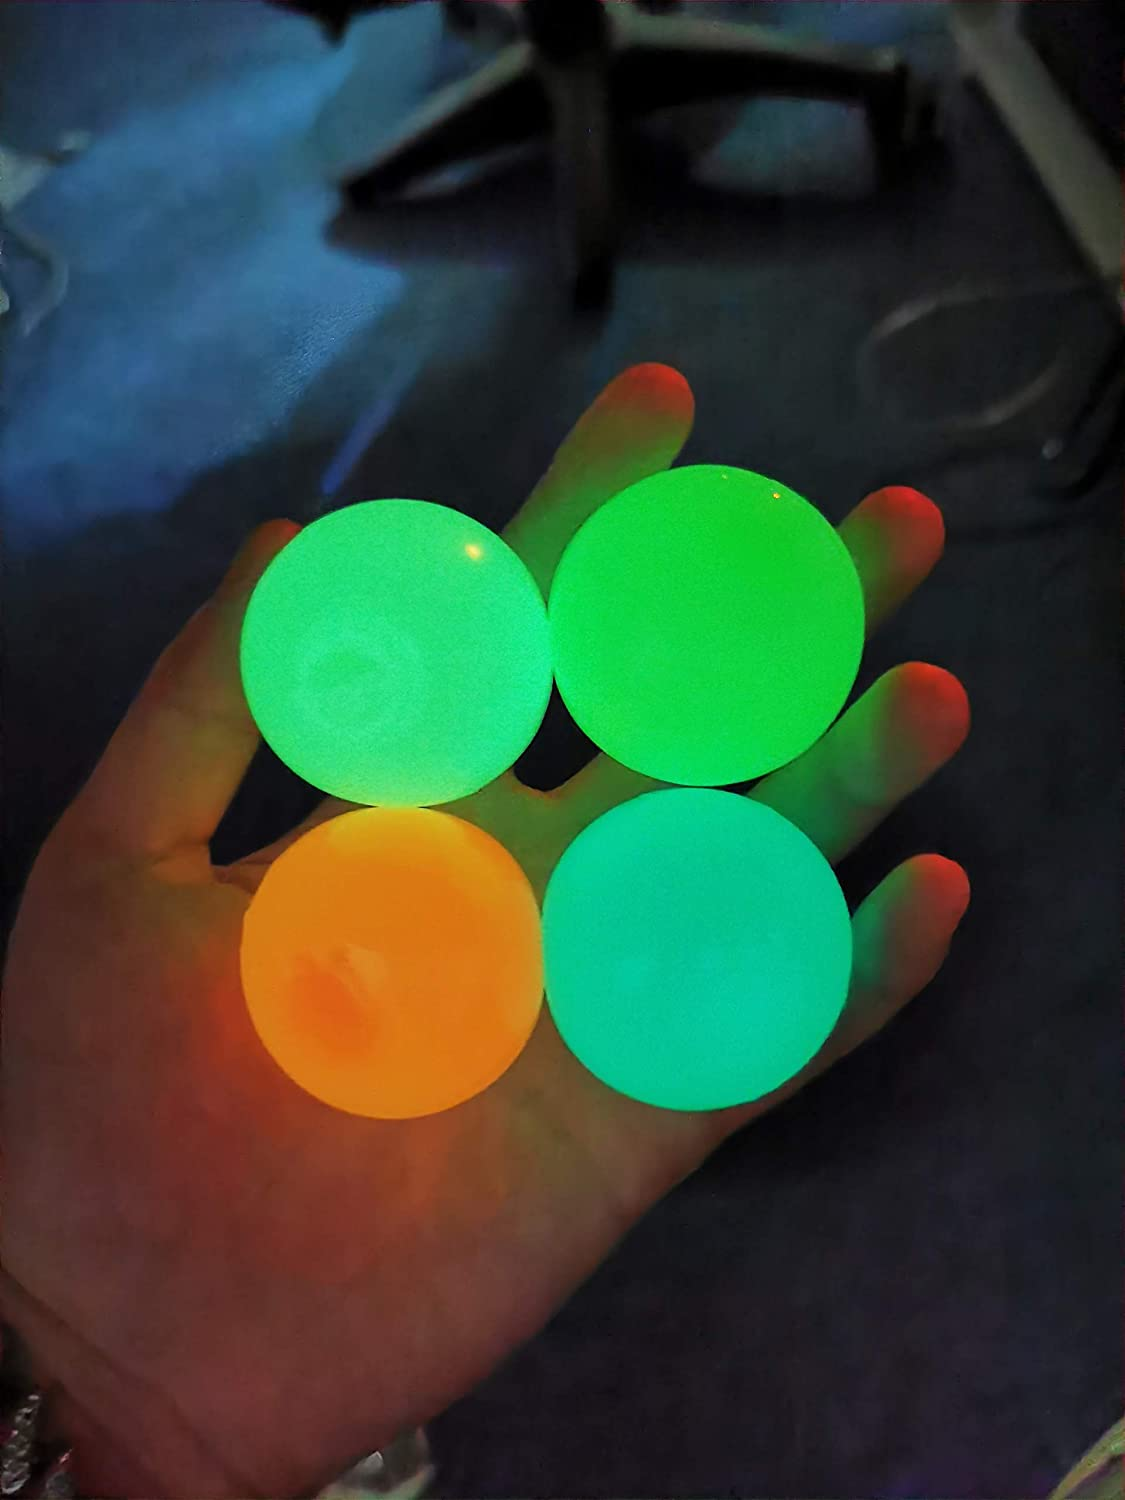 4 Pcs Fluorescence Squishy Sticky Balls for Kids, Luminescent Sticky Balls That Stick to Wall Stress Relief Toys for Kids and Adults Tear-Resistant, Non-Toxic, Fun Toy for ADHD, OCD, Anxiety: Health & Personal Care